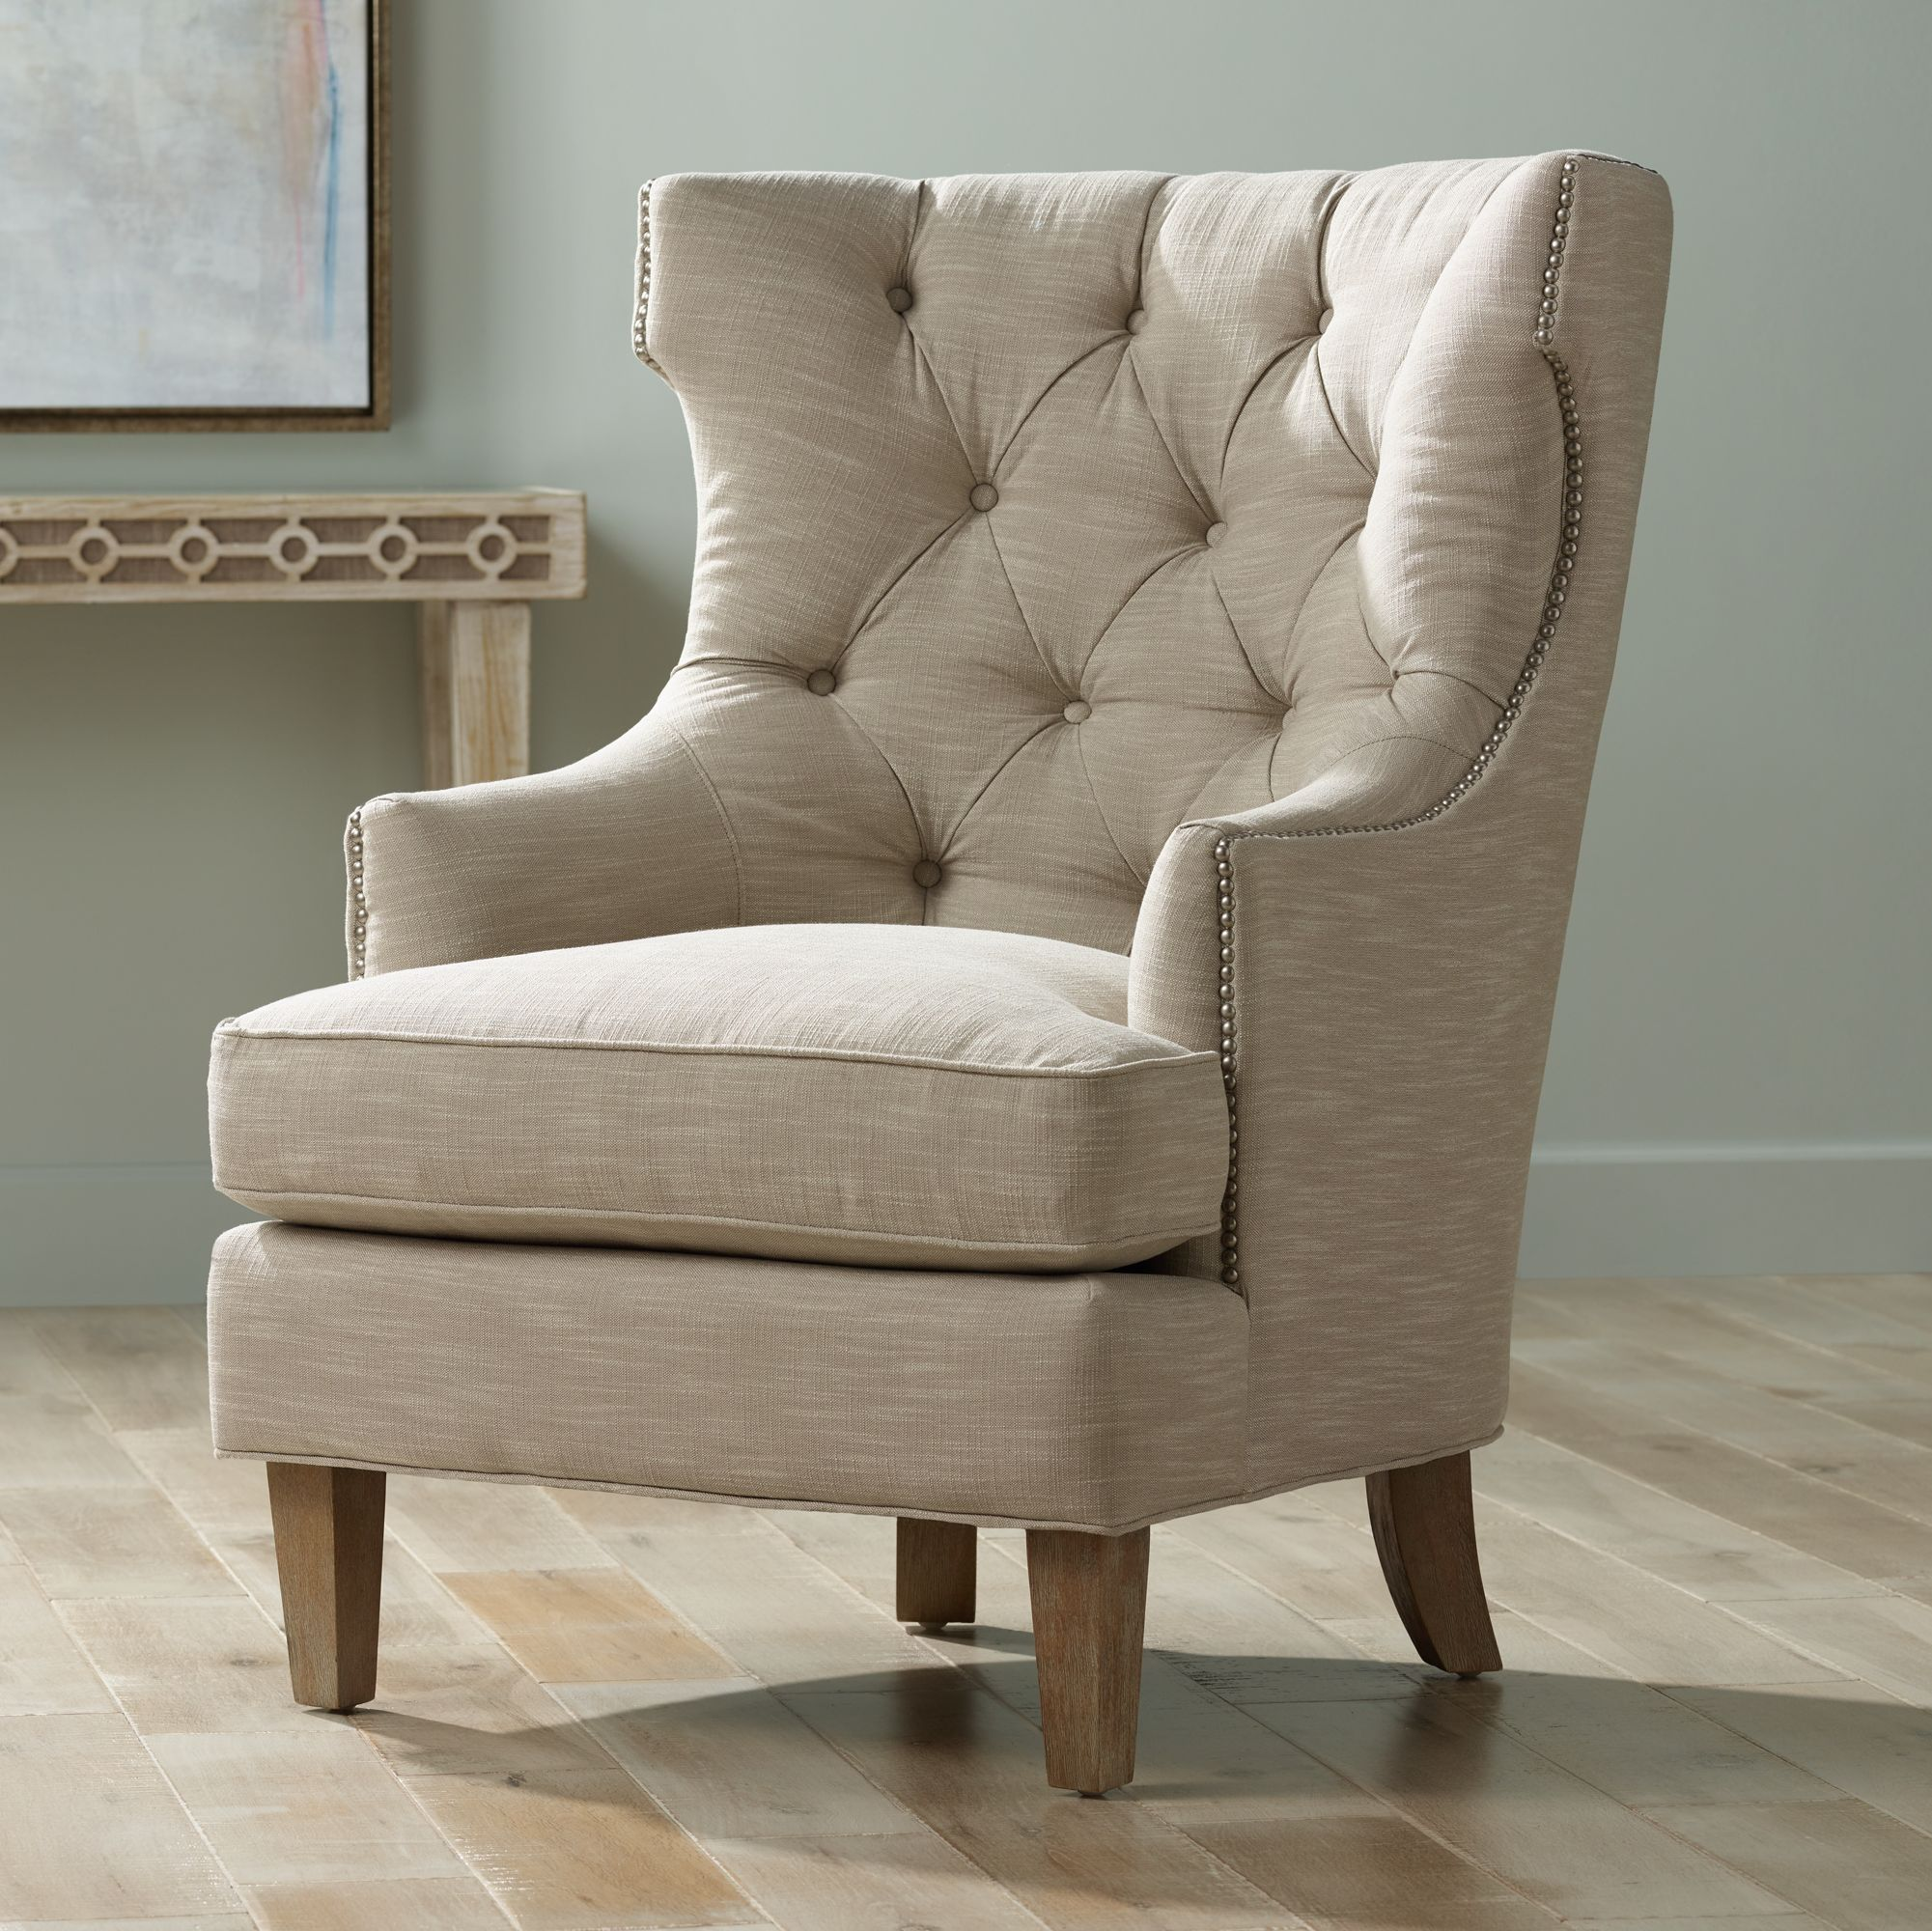 Reese Studio Oatmeal High-Back Accent Chair